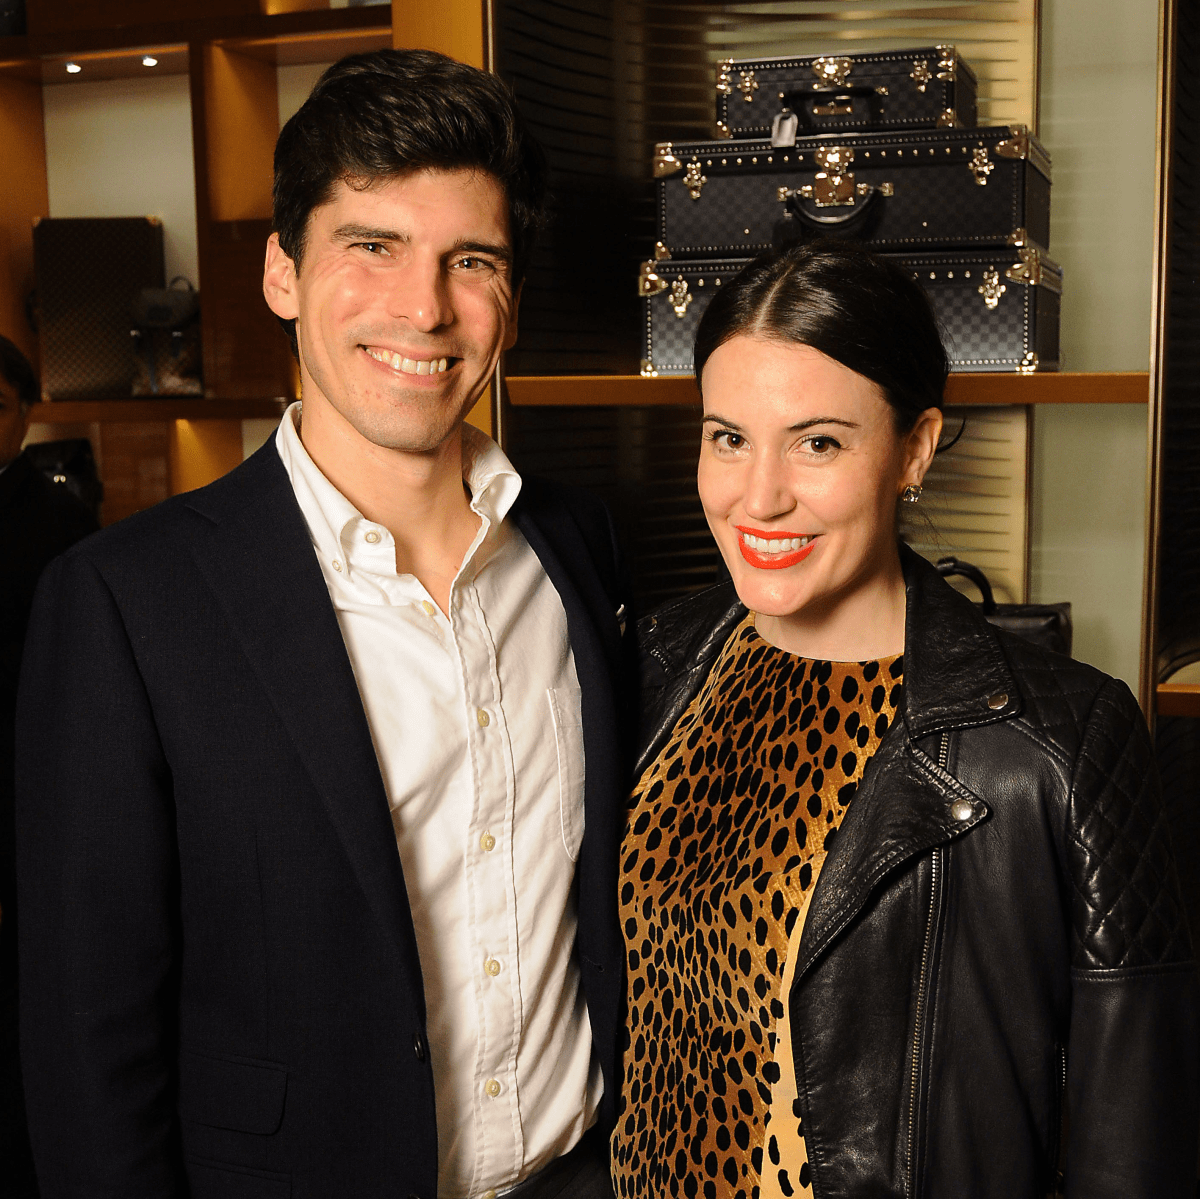 Houston, Louis Vuitton Alley Theatre Salute, September 2015, Will and Valerie Dittner